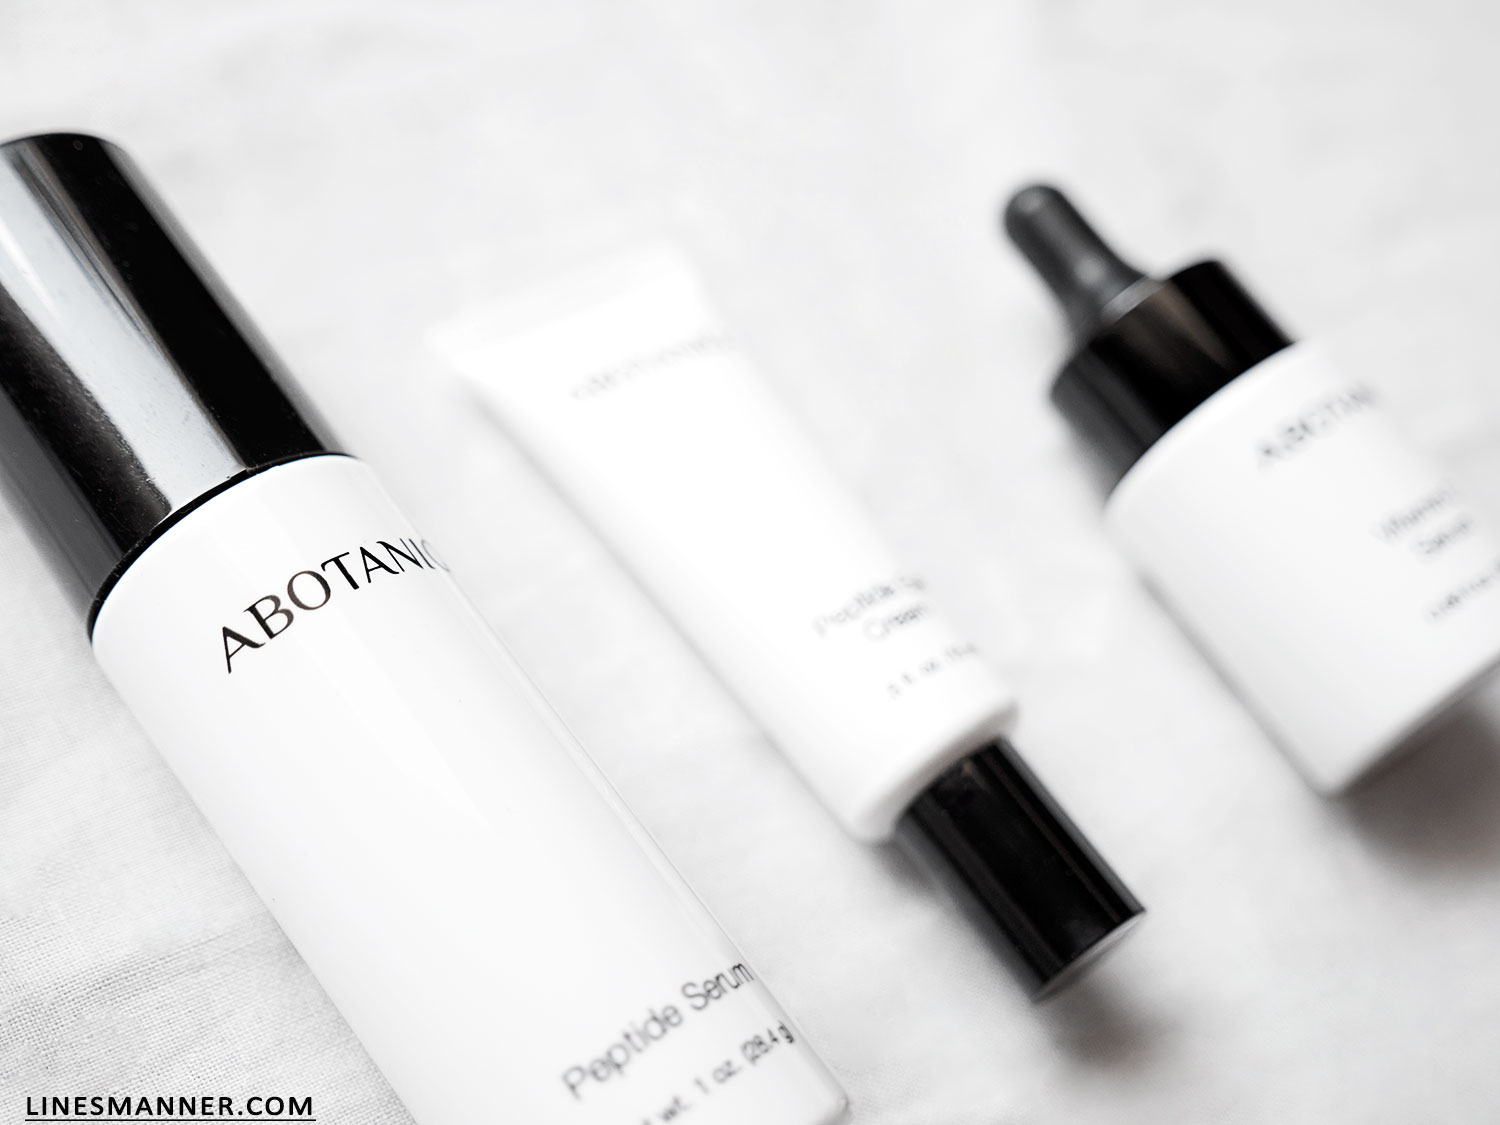 Lines-Manner-Abotaniq-Skin_Care-Natural-Science-Technology-Beauty-Quality-Authentic-Skins-Peptides-Antioxidant-Fresh-Black_and_White-Essentials-Expert-6